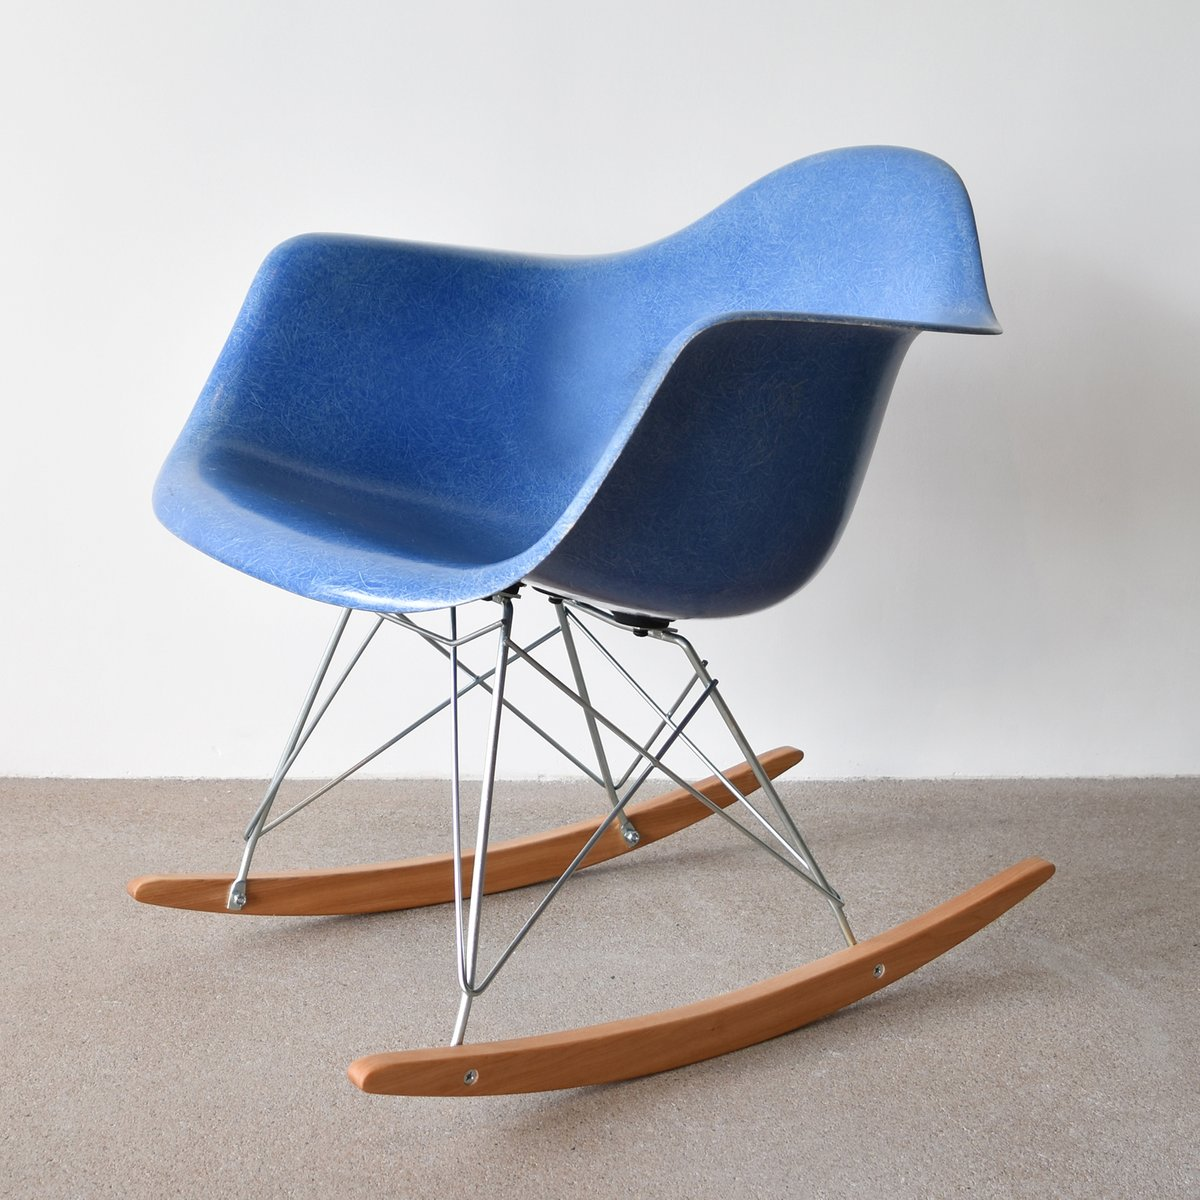 vintage rar chair in blue by charles and ray eames for herman miller for sale at pamono. Black Bedroom Furniture Sets. Home Design Ideas